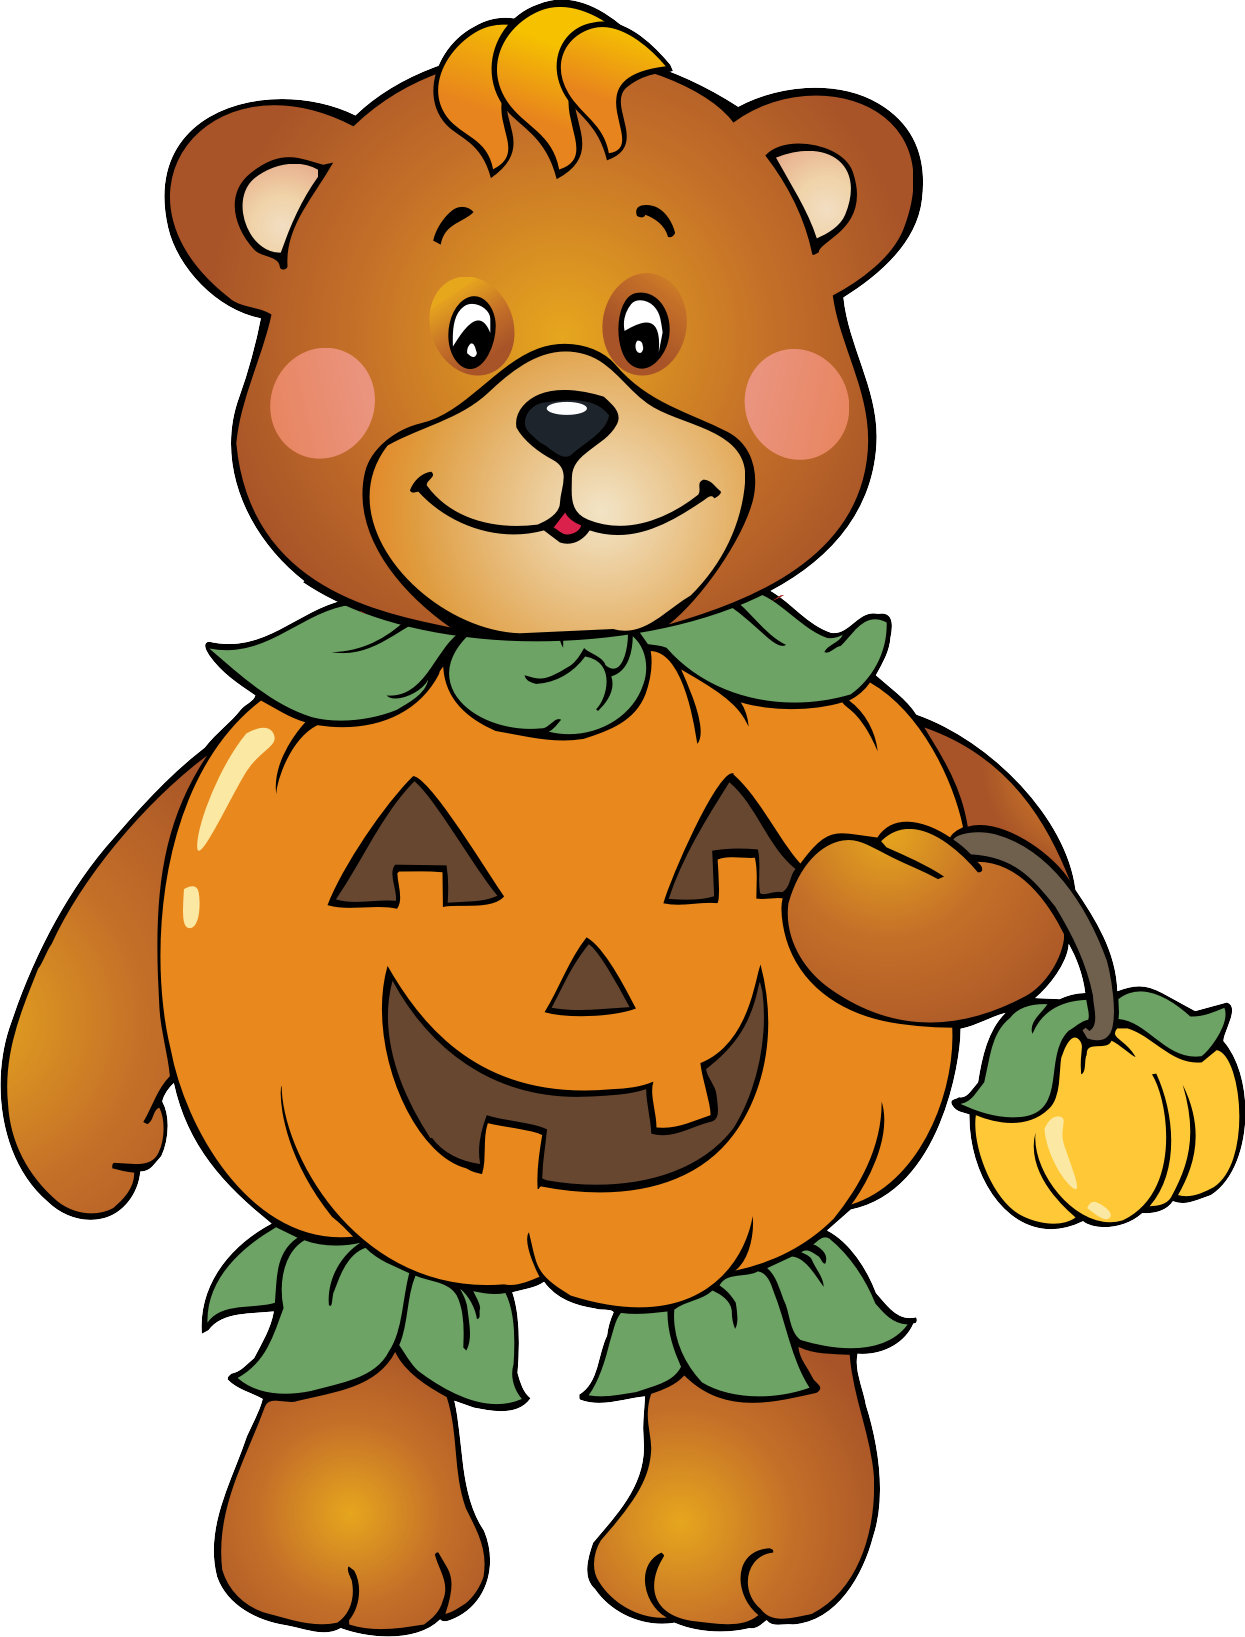 Free clipart dealing with halloween images banner royalty free library Free Halloween Clip Art Spider Free Clipart Images banner royalty free library